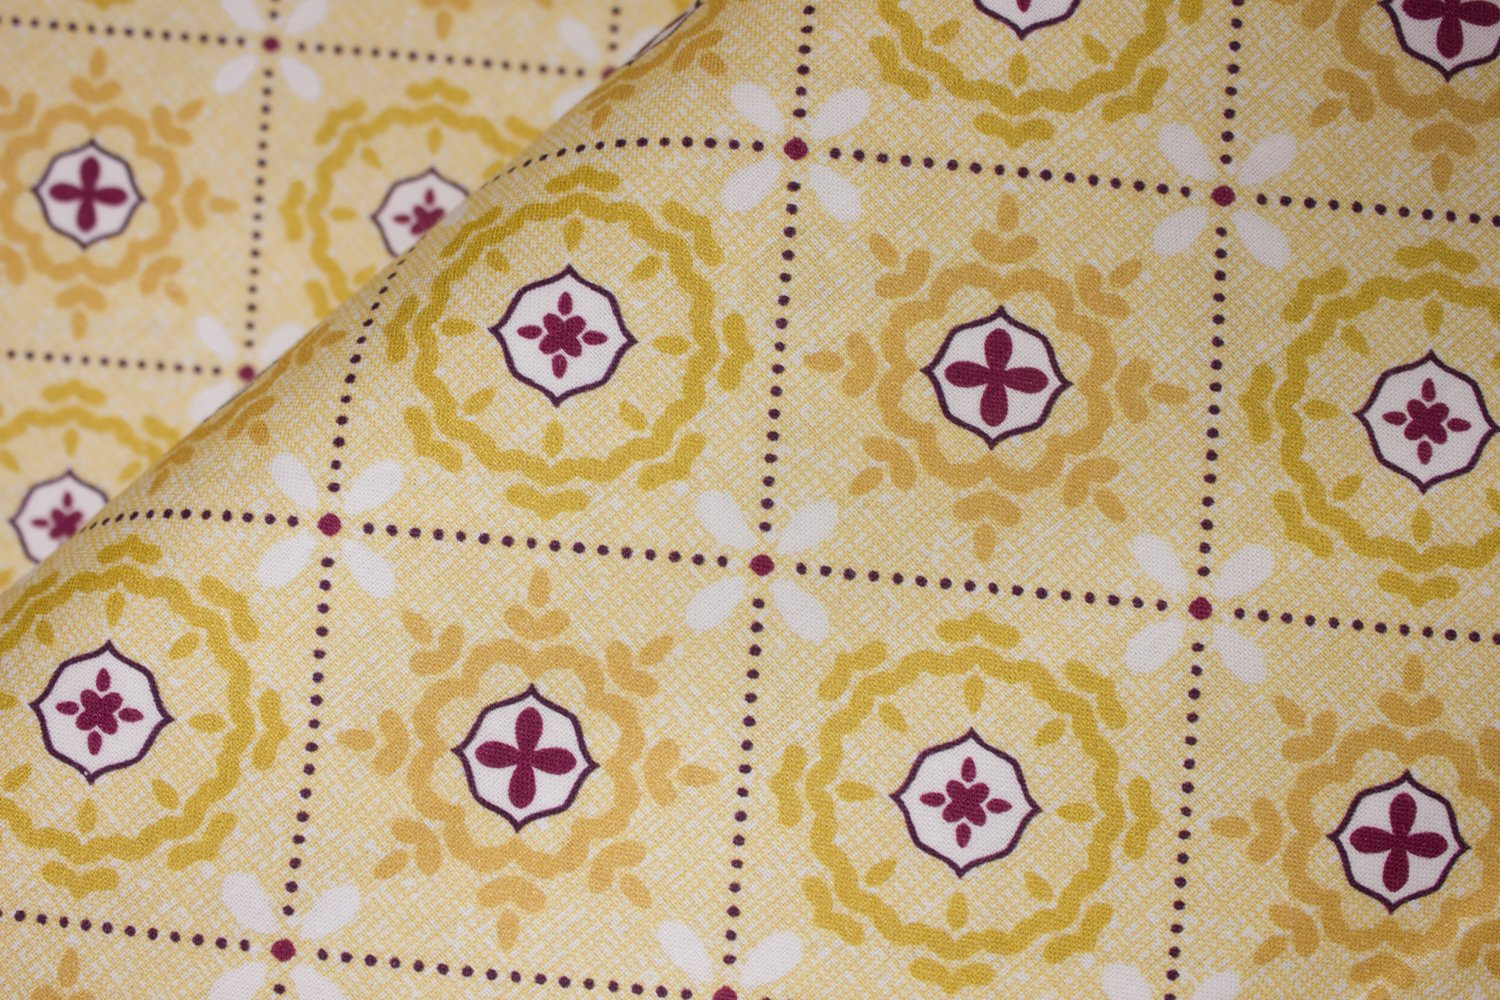 Mosaic in Shallows Yellow:  Mabon by Shelley Cavanna for Contempo Studio in association with Benartex